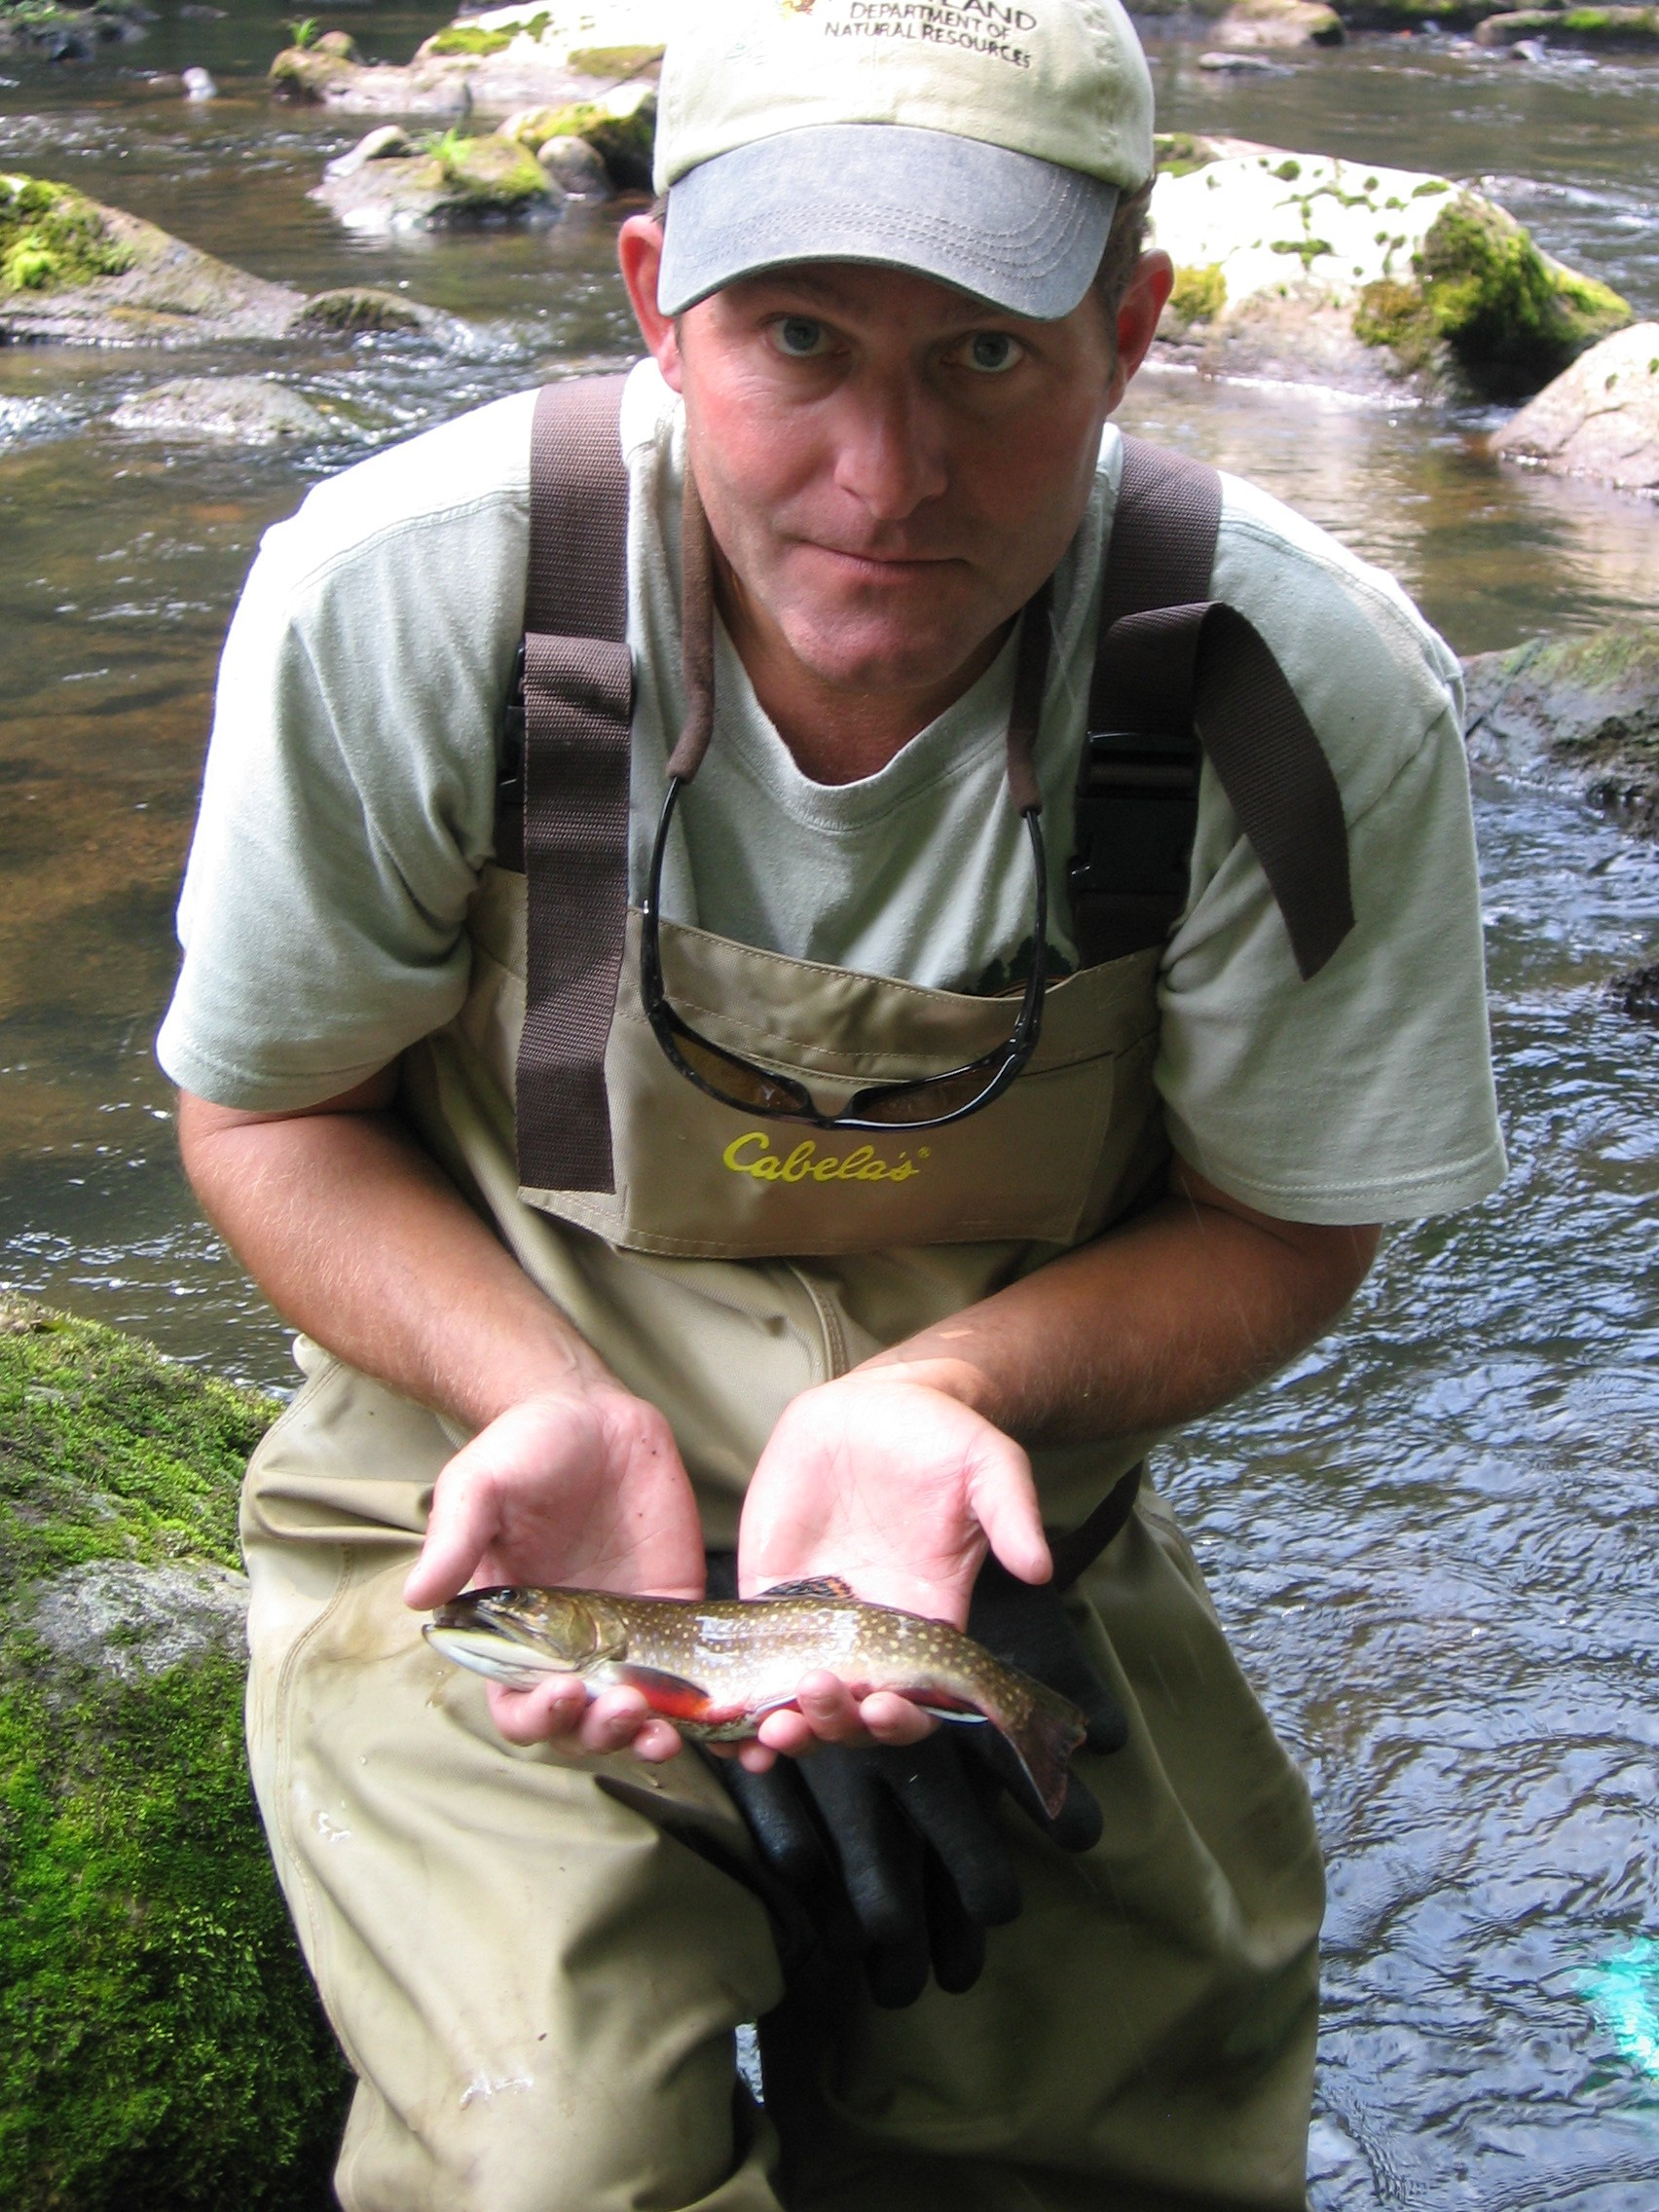 Meat fisherman for conservation u s fish and wildlife for Md trout fishing